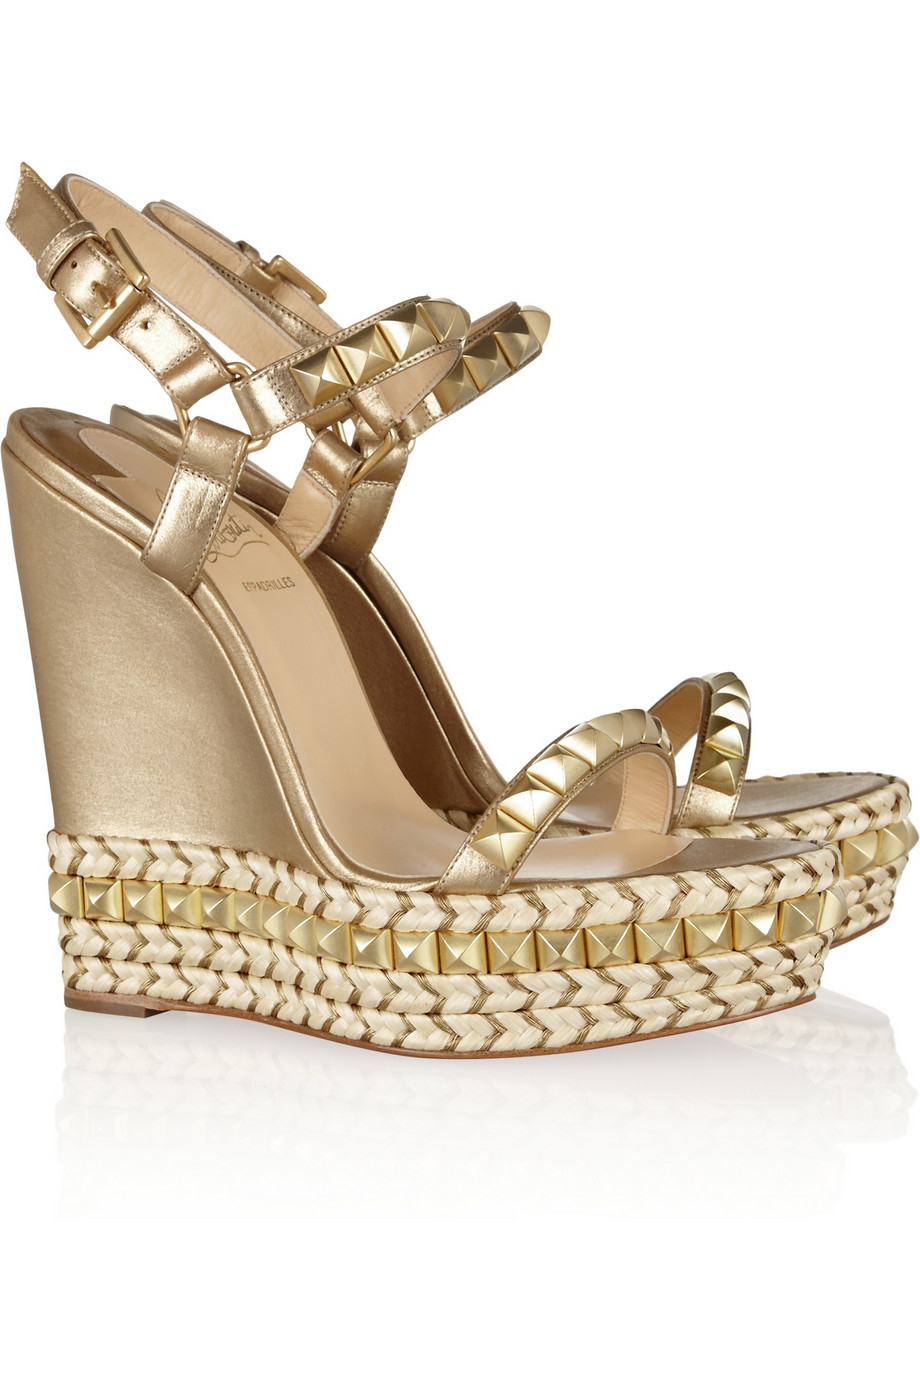 Christian louboutin Cataclou 140 Embellished Metallic Leather ...